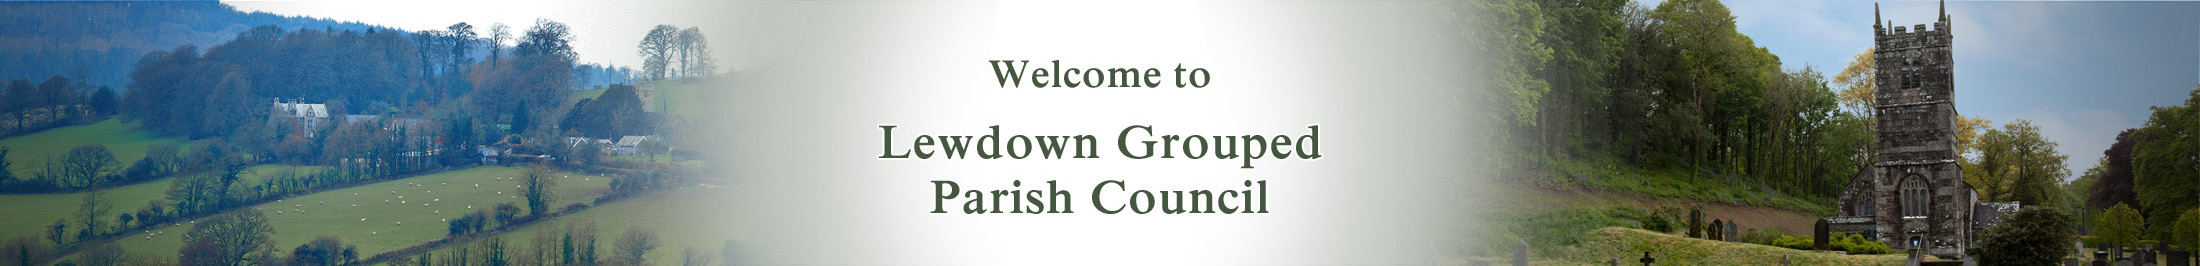 Header Image for Lewdown Grouped Parish Council